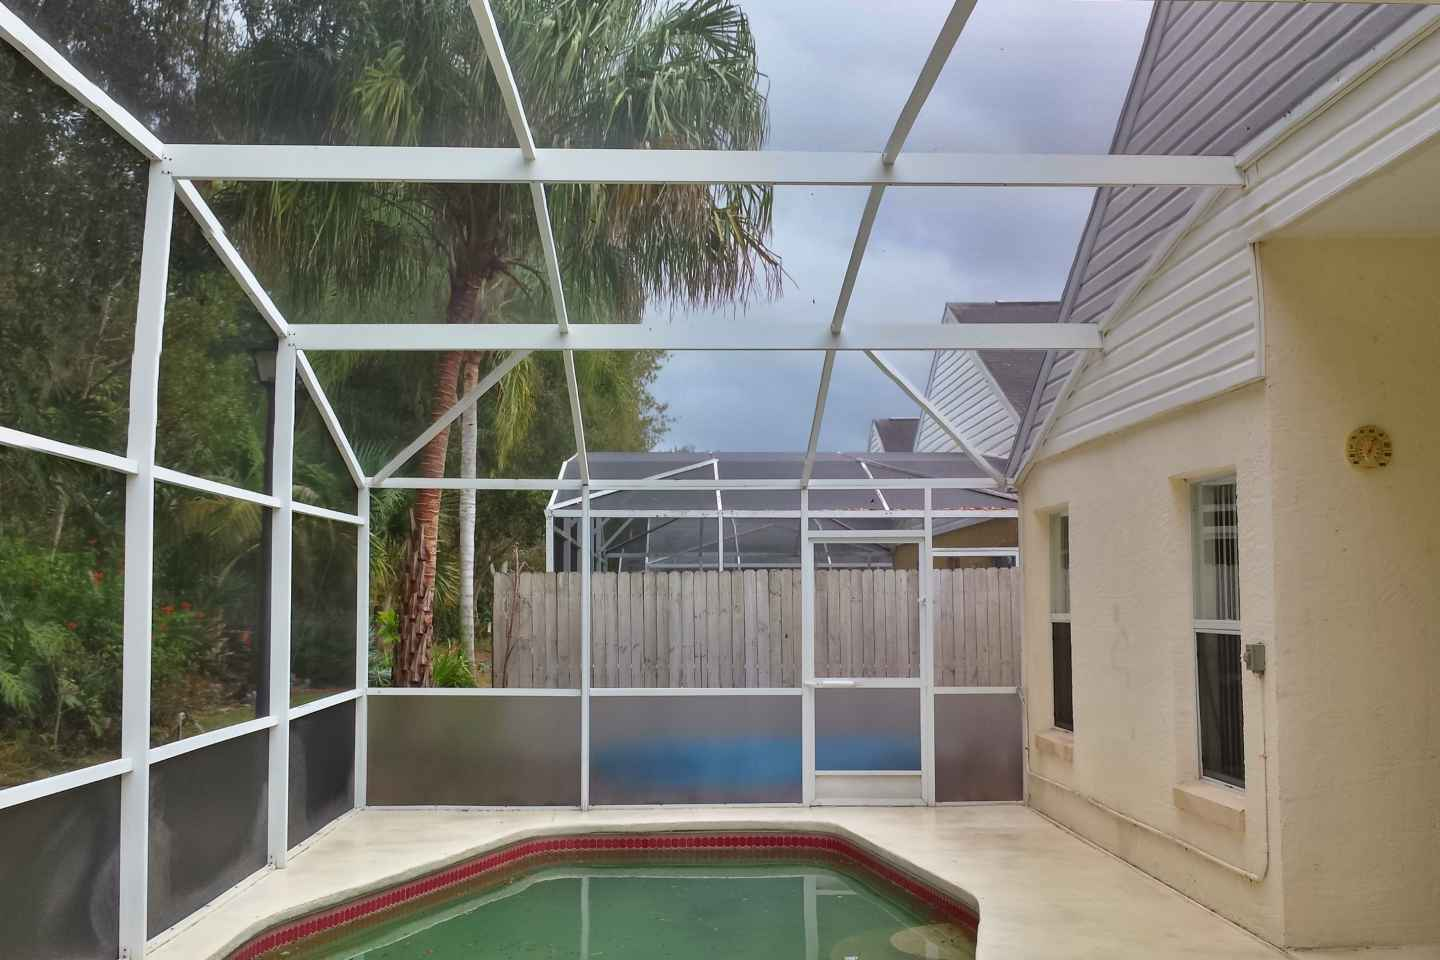 11-pool-enclosure-florida-glass-after-re-screen.jpg